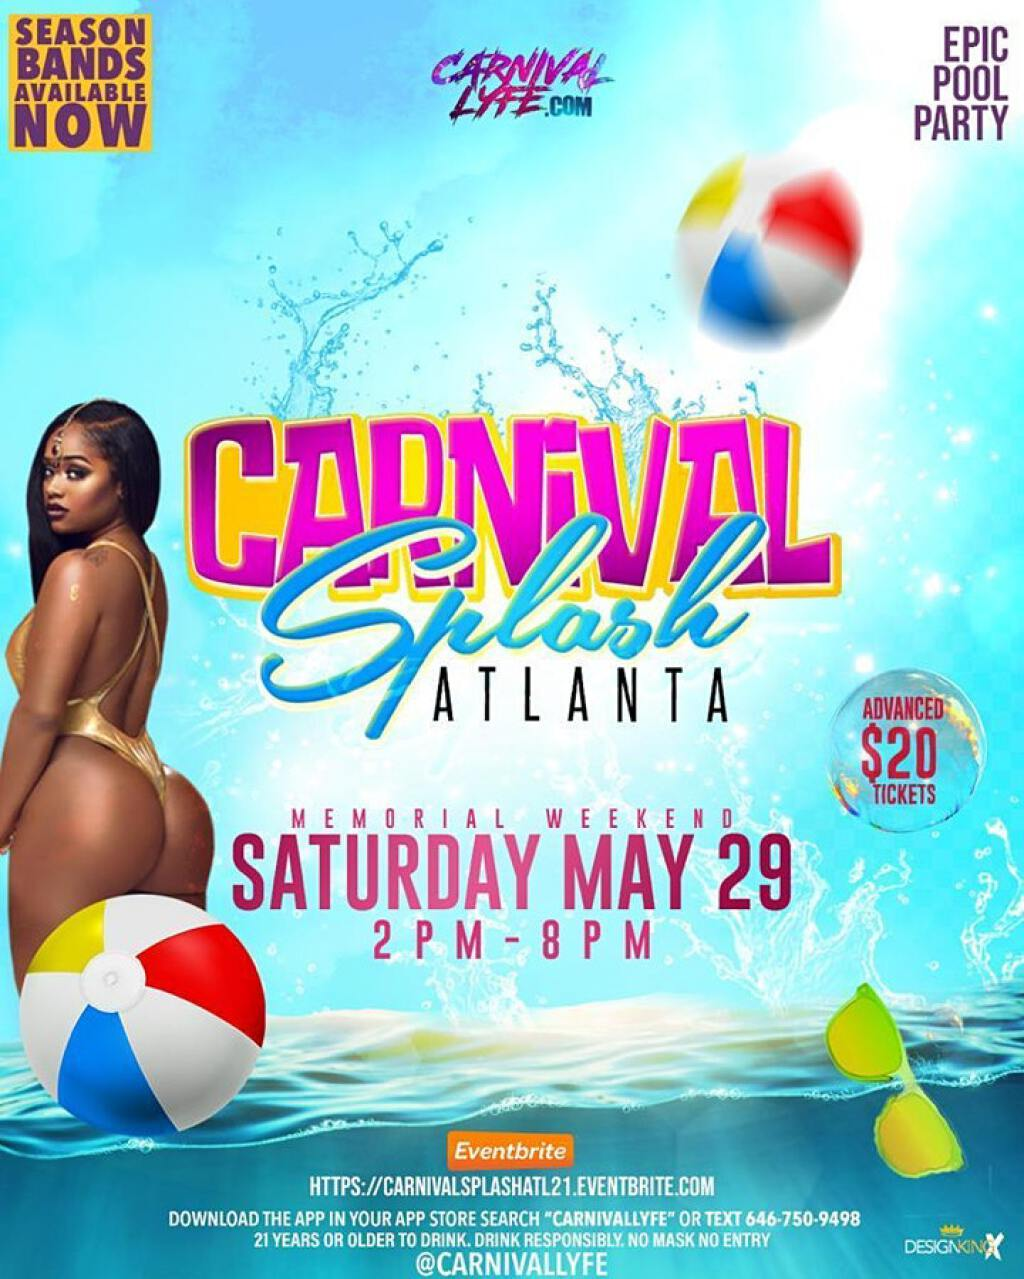 Carnival Splash Pool Party flyer or graphic.